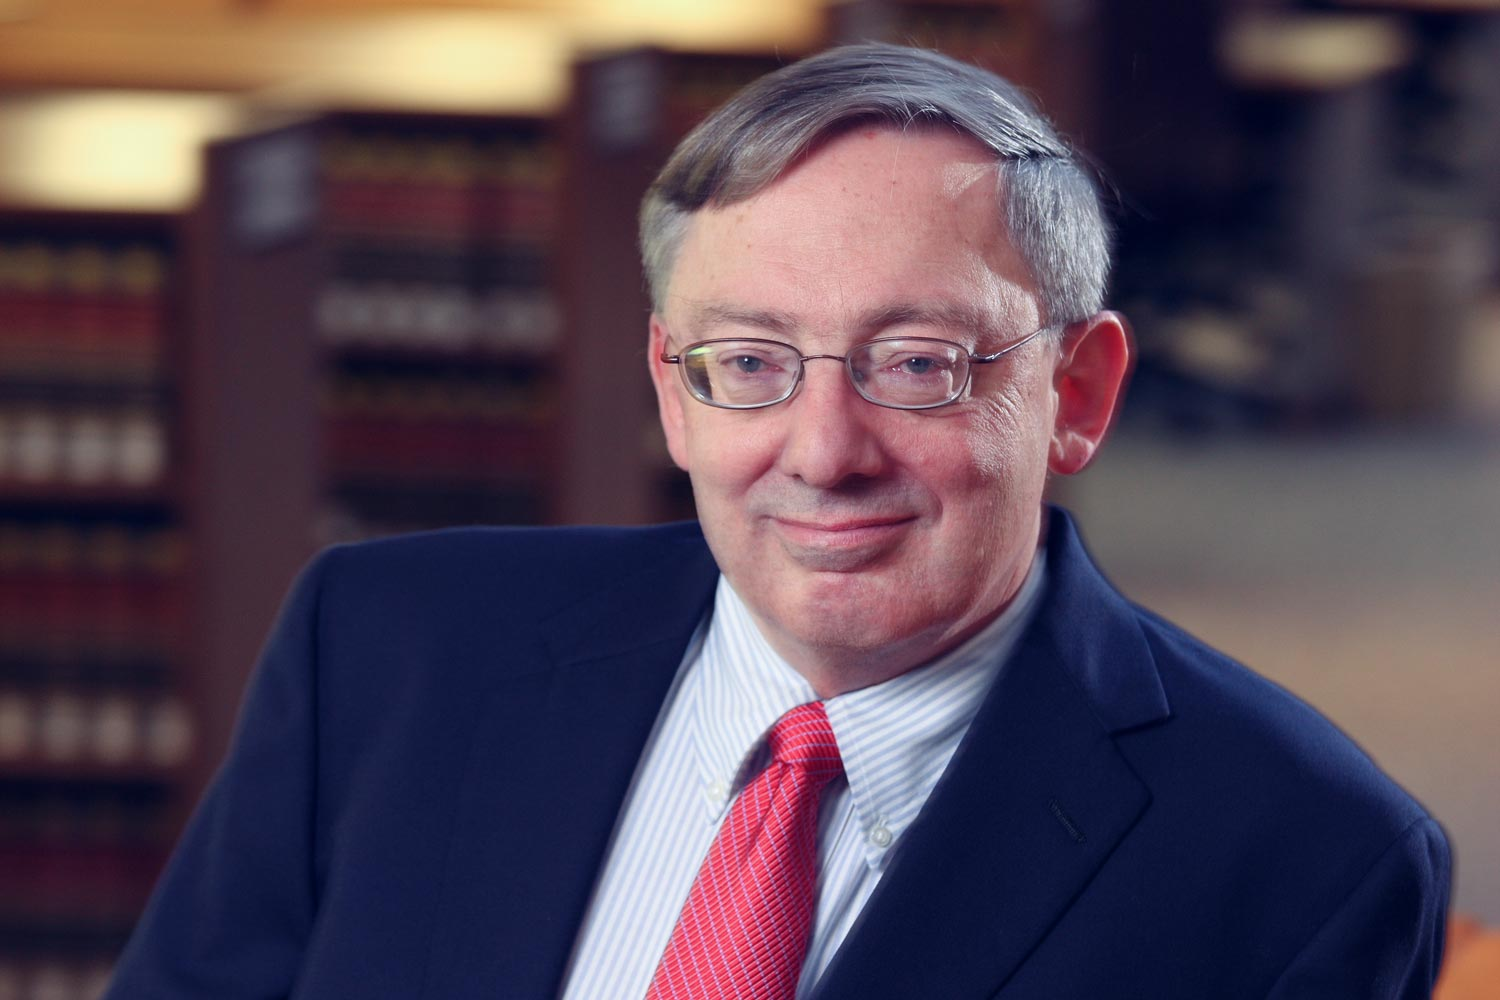 UVA Law professor Douglas Laycock says the effect of the ruling will depend on the politics of the states.